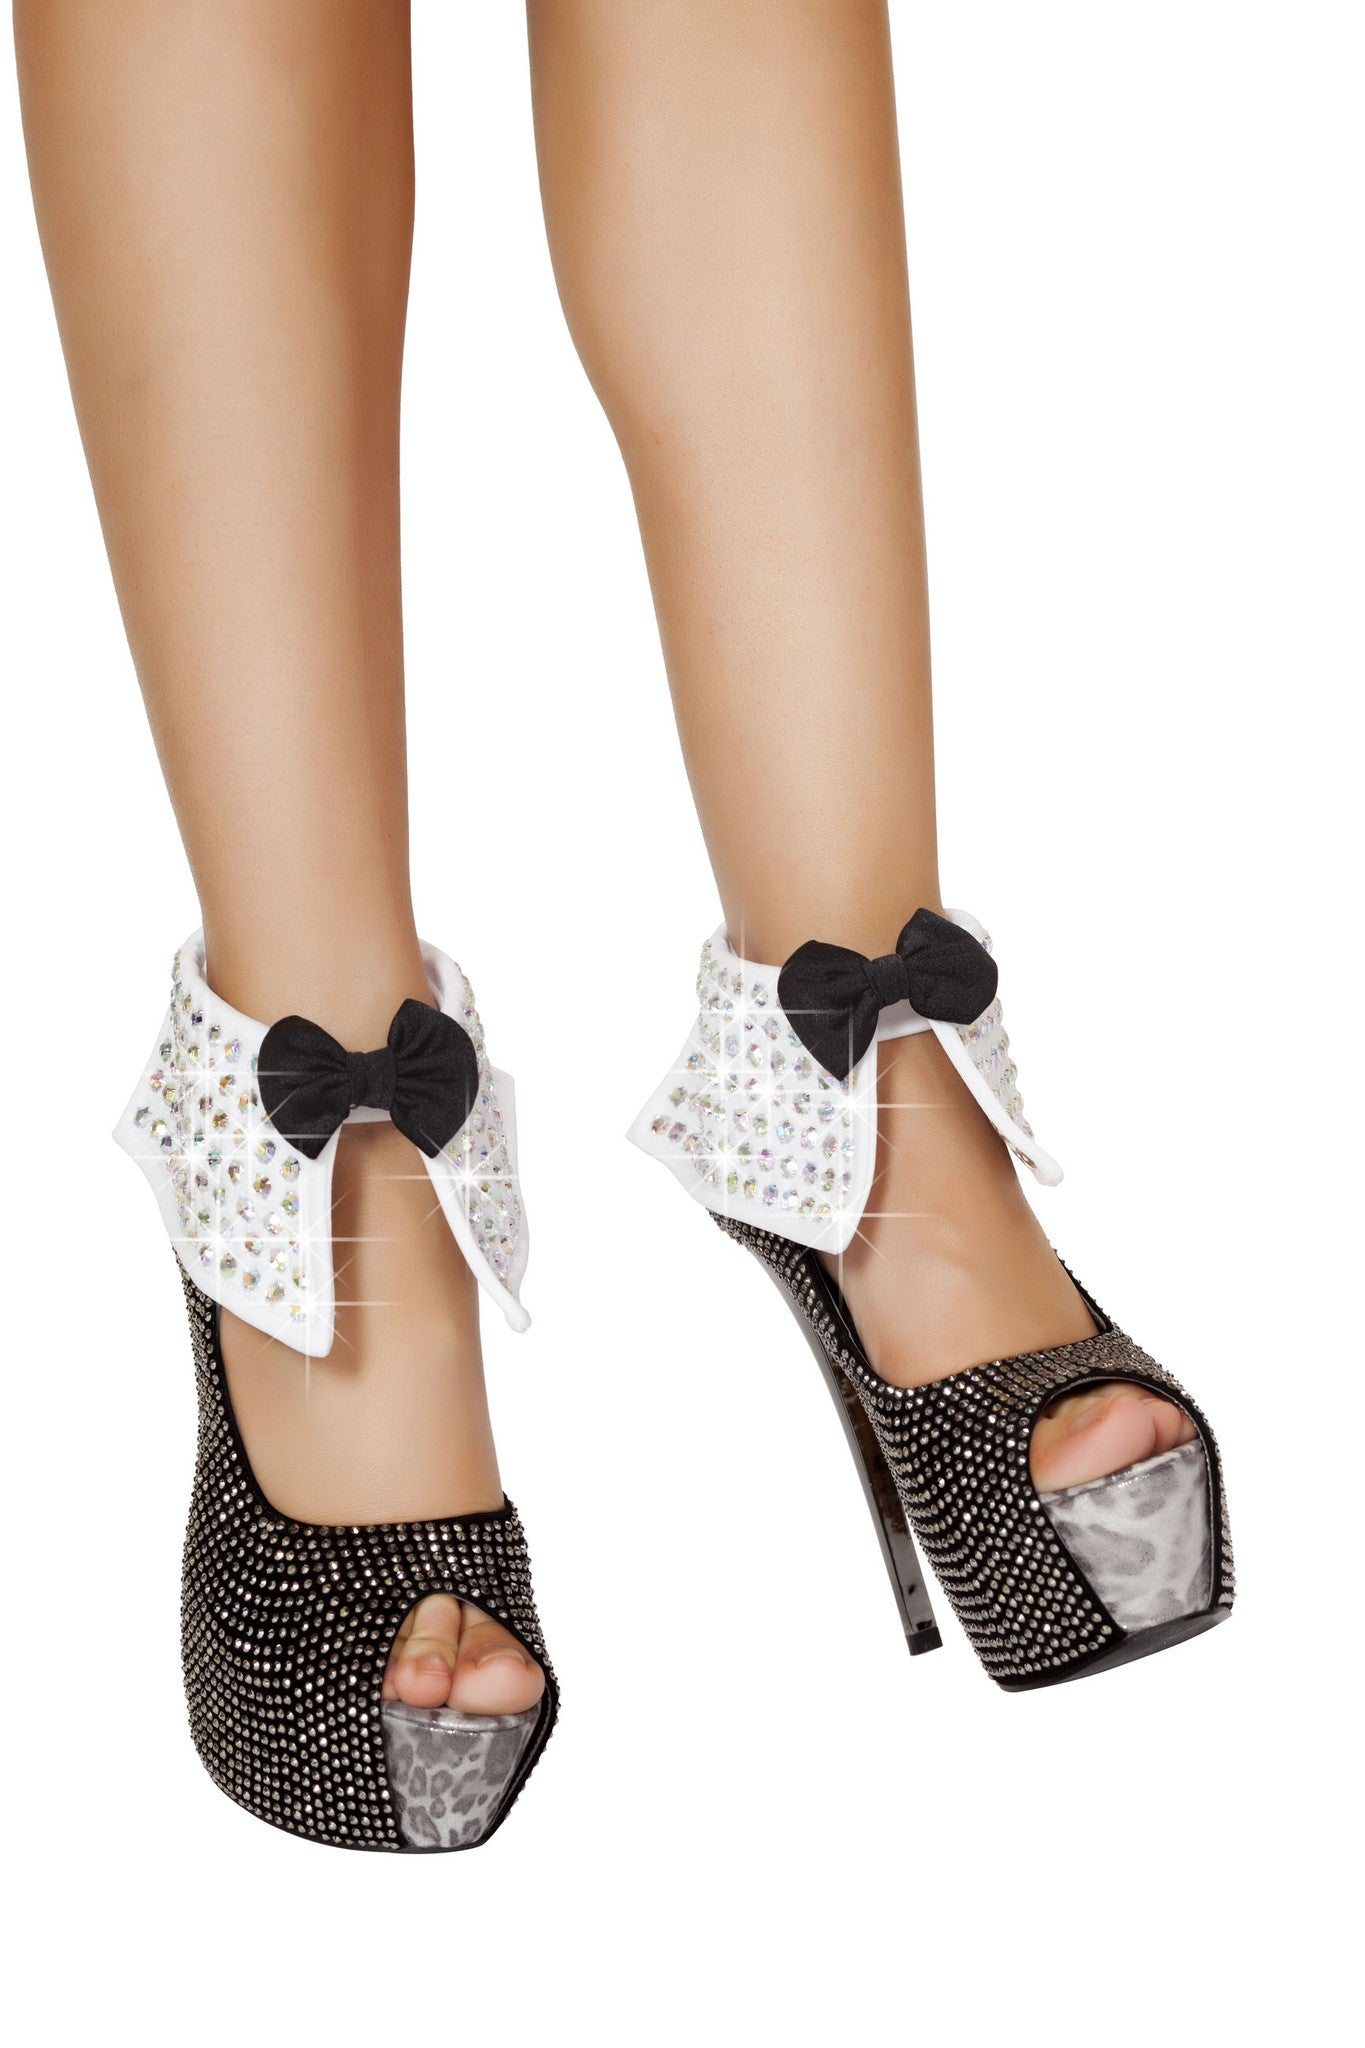 4506 - Rhinestone Ankle Cuffs with Bow